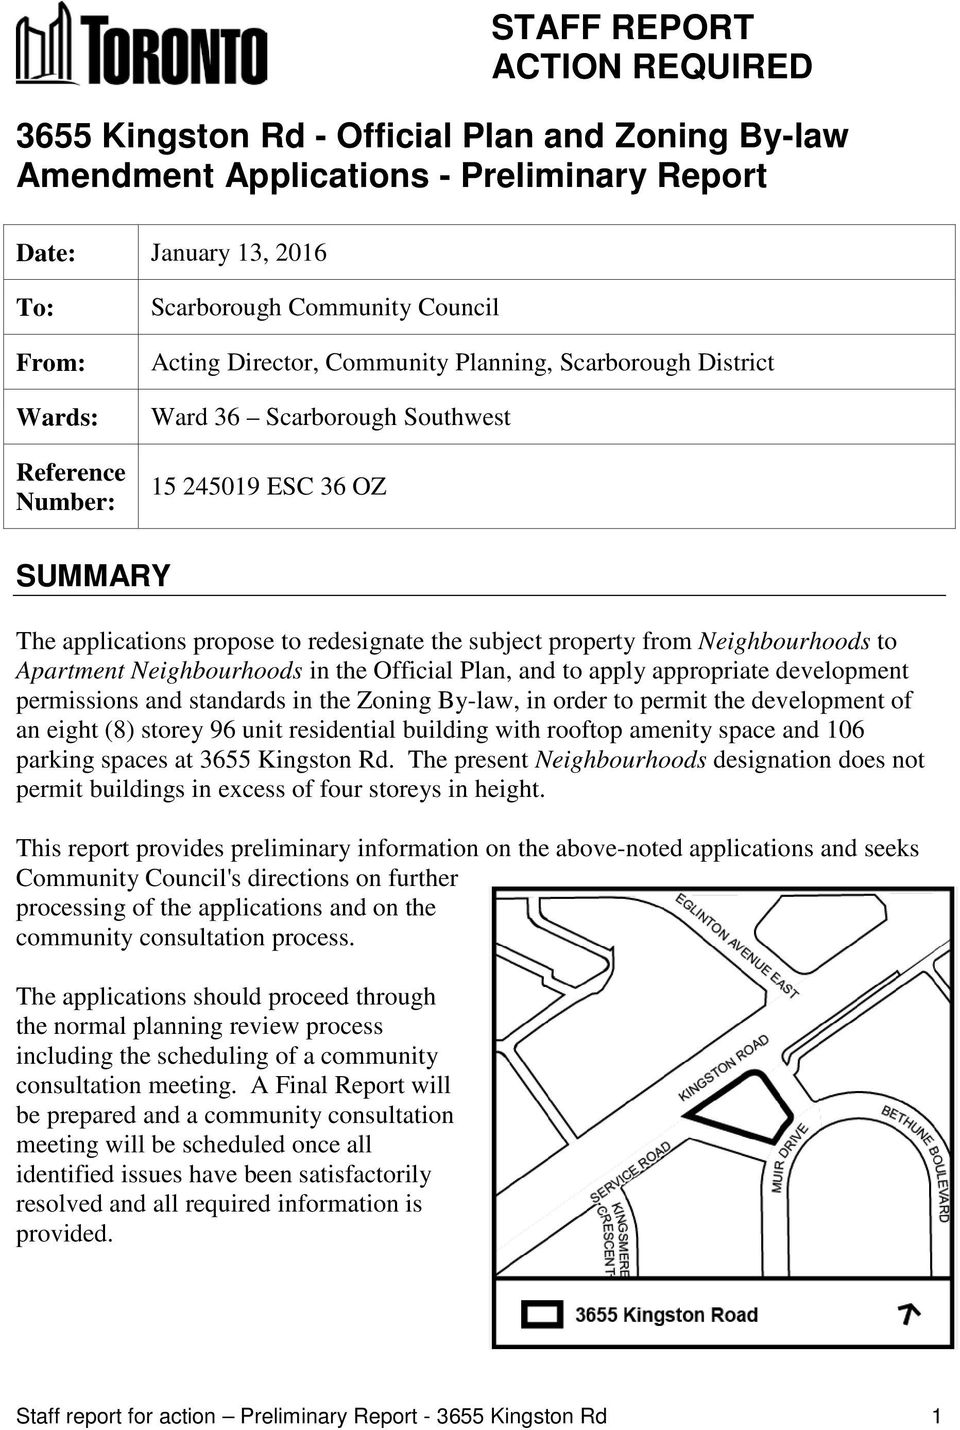 Neighbourhoods to Apartment Neighbourhoods in the Official Plan, and to apply appropriate development permissions and standards in the Zoning By-law, in order to permit the development of an eight